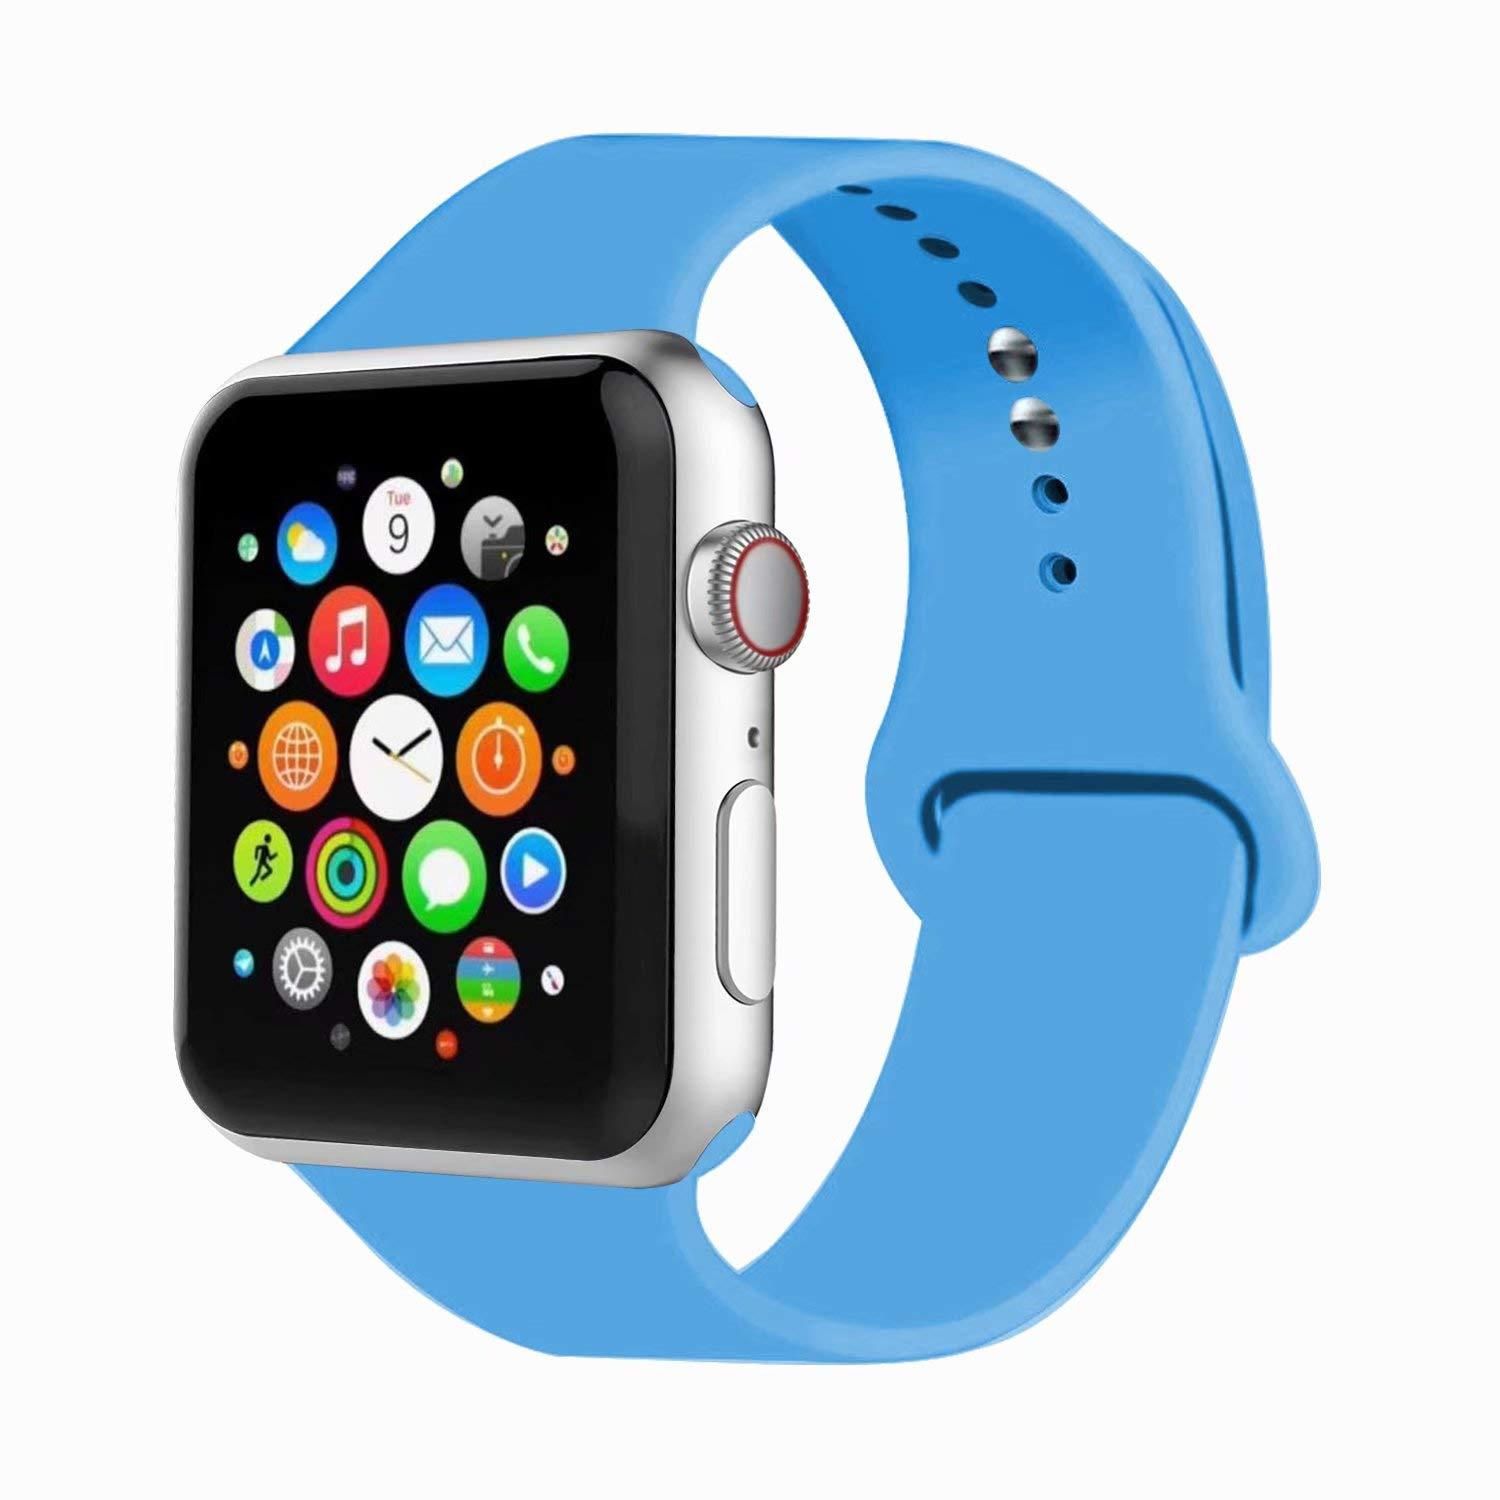 Apple Watch Band - Birthday Gifts For Runners Under 15$